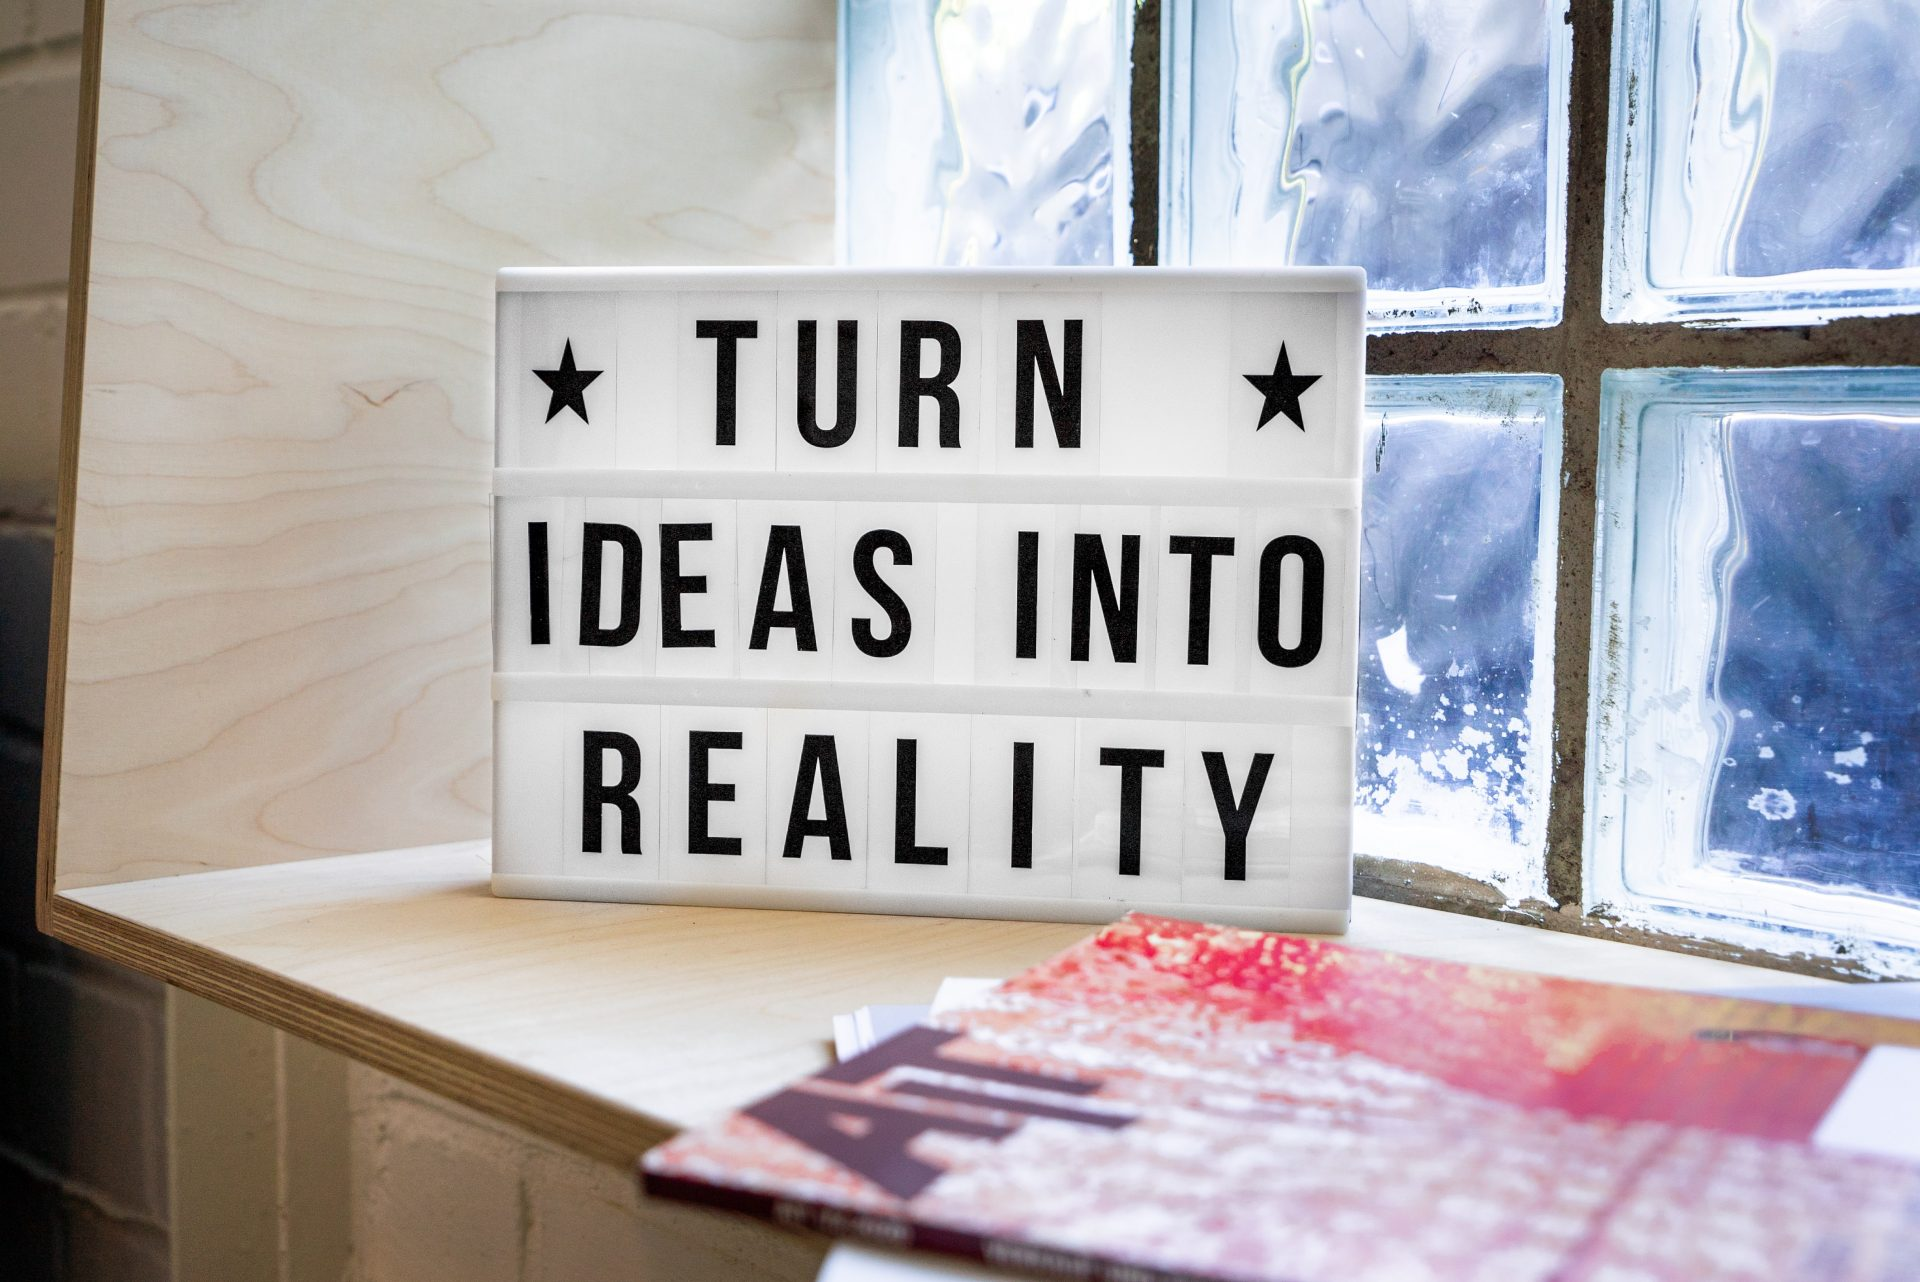 turn ideas into reality motivational sign